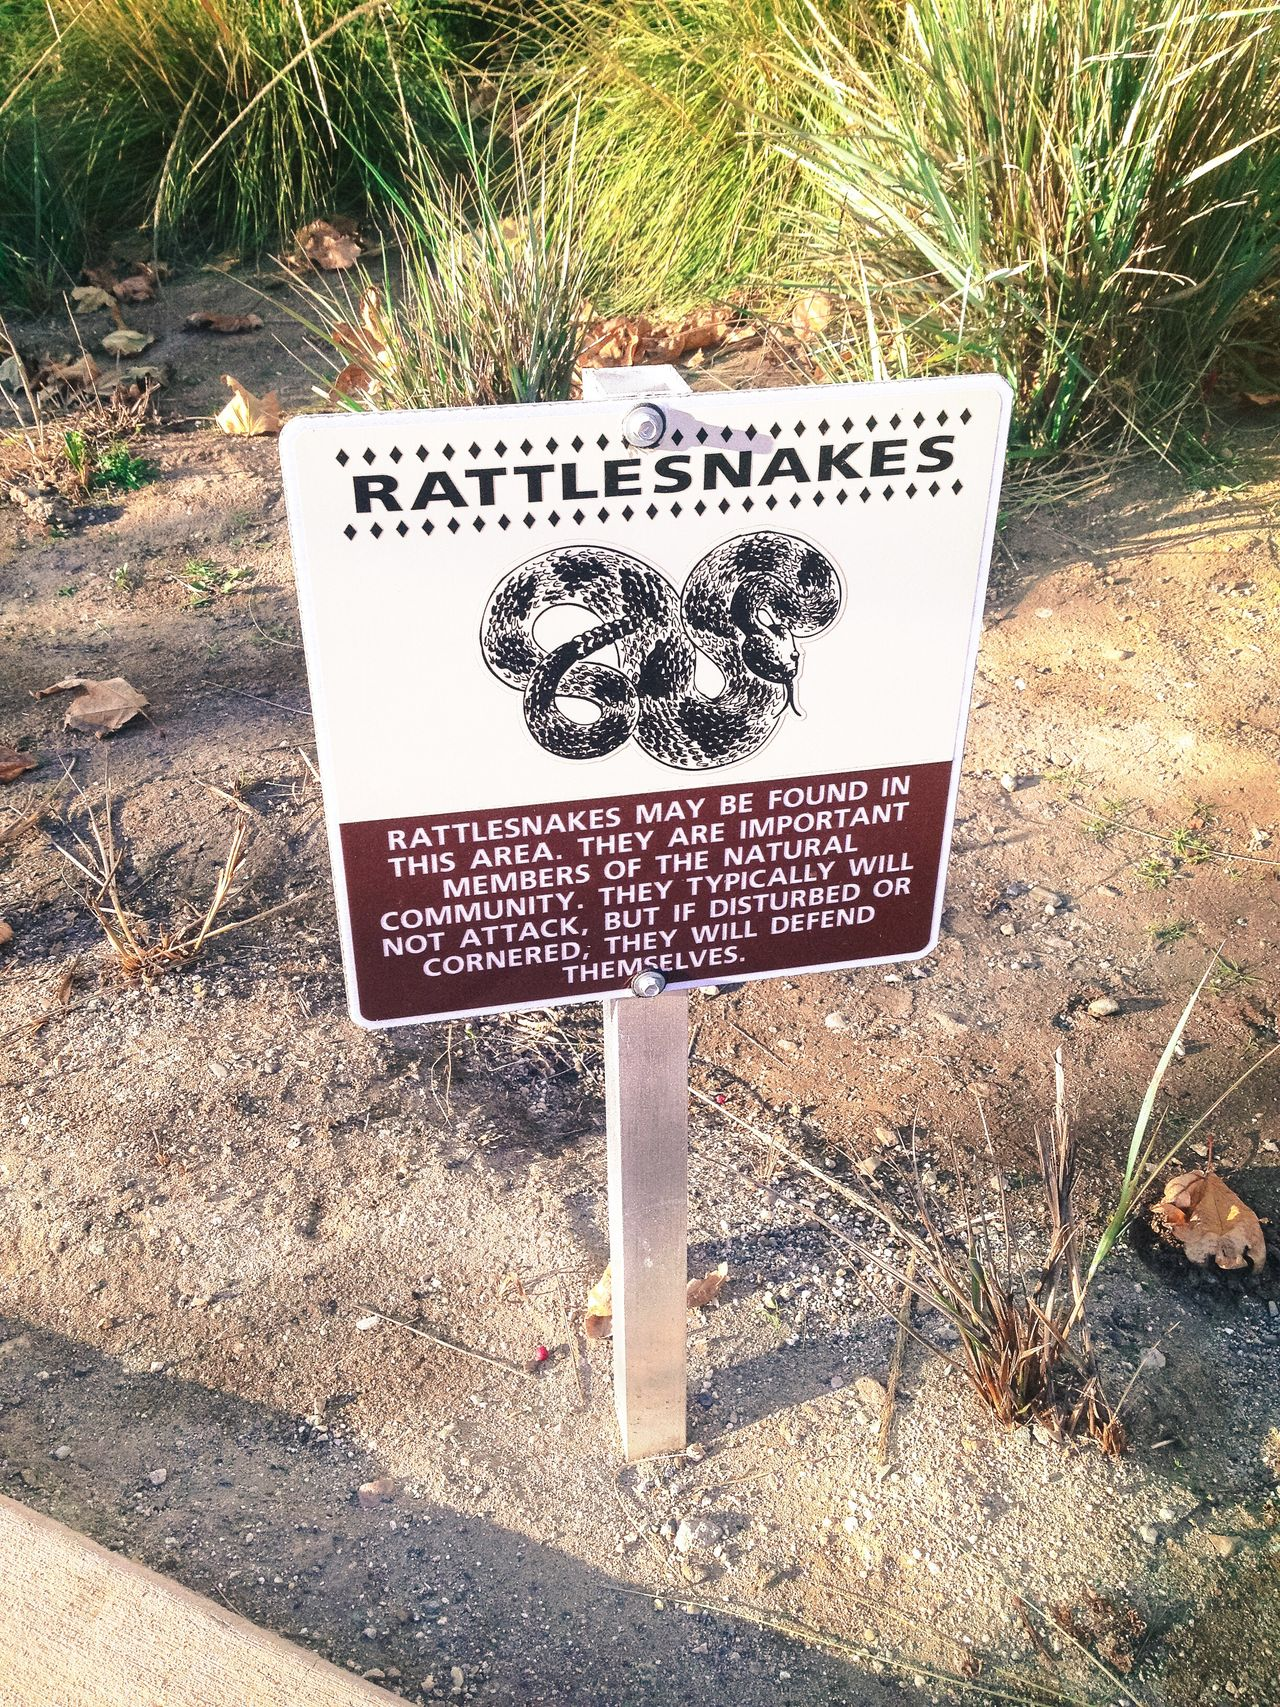 Rattlesnakes Warning Communication Field Text Grass Outdoors Nature No People Conservation Environment Warning Warning Sign Danger Sign Desert California Animals In The Wild Tourism Travel Danger Sign Danger Zone Rattlesnake Backgrounds Grasses Sand Arid Landscape